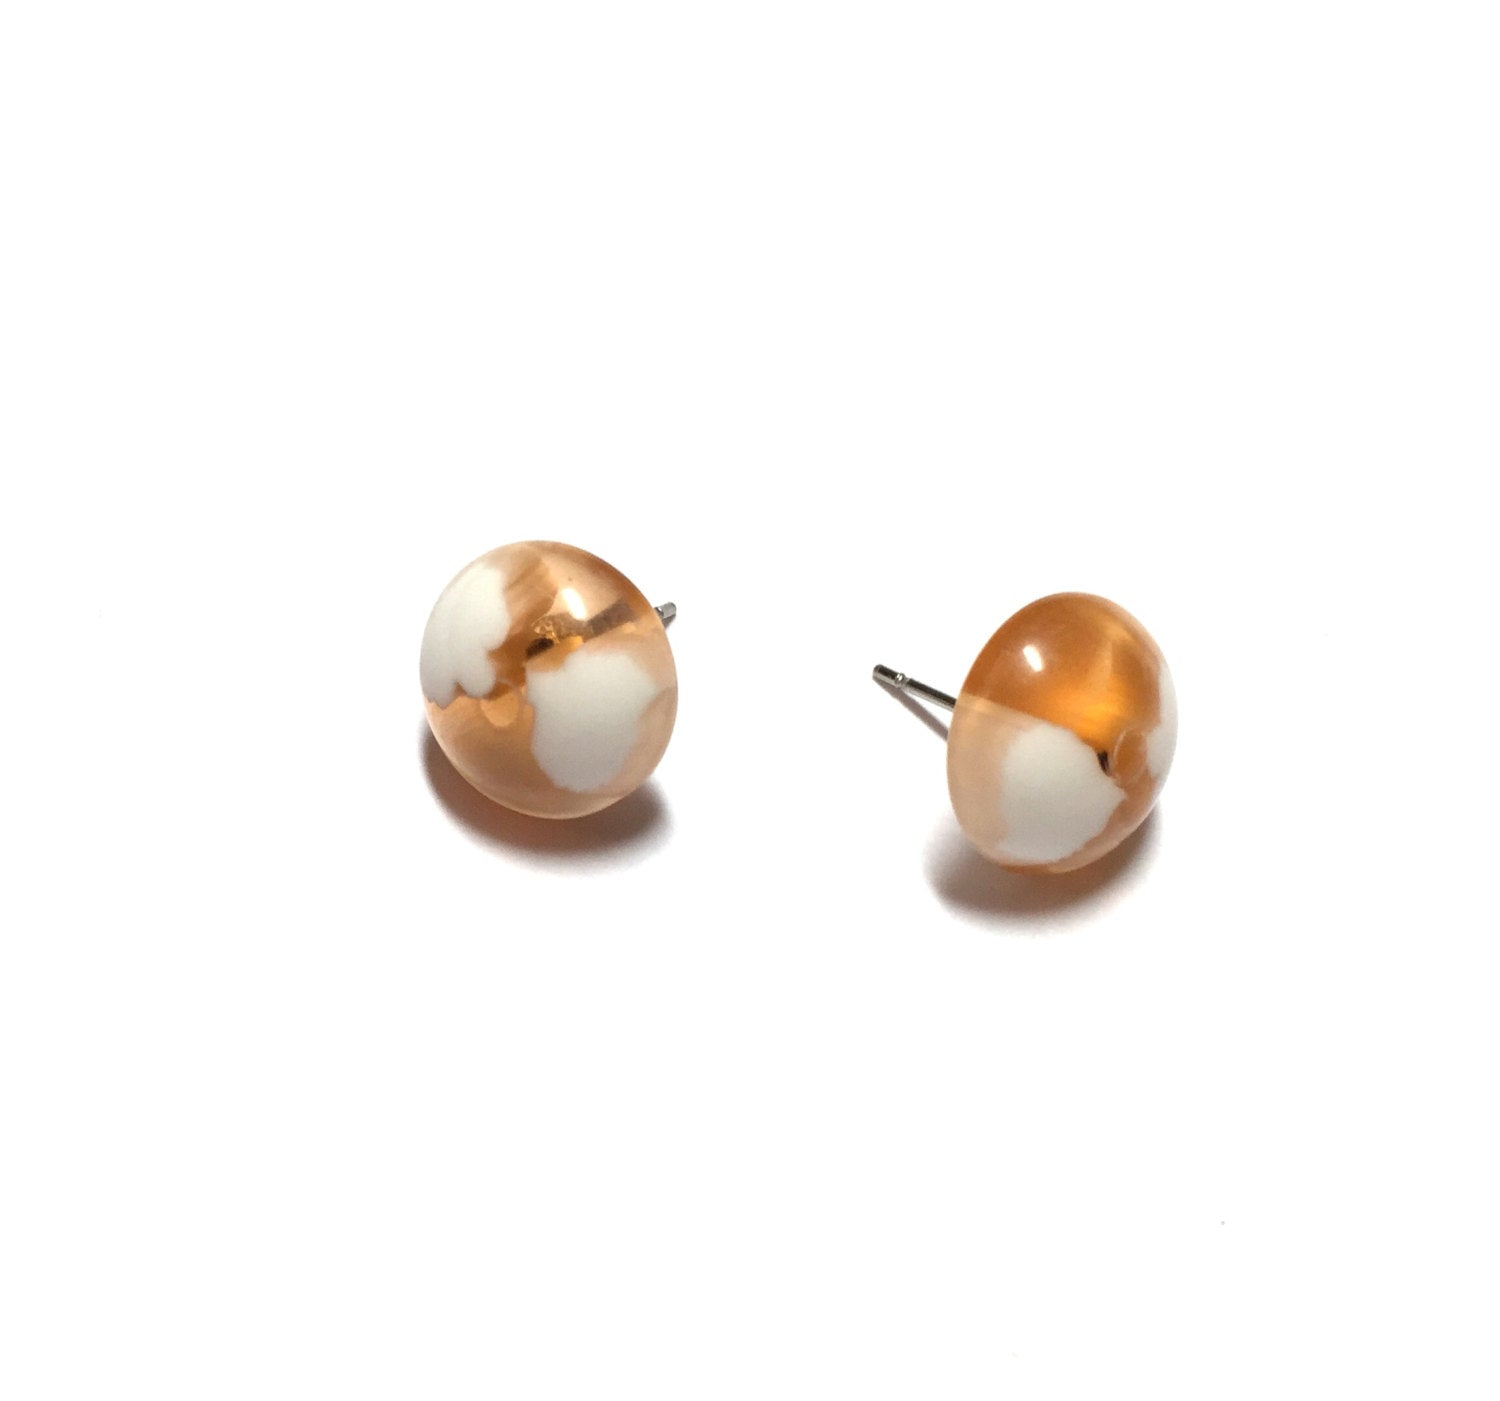 beige stud earrings